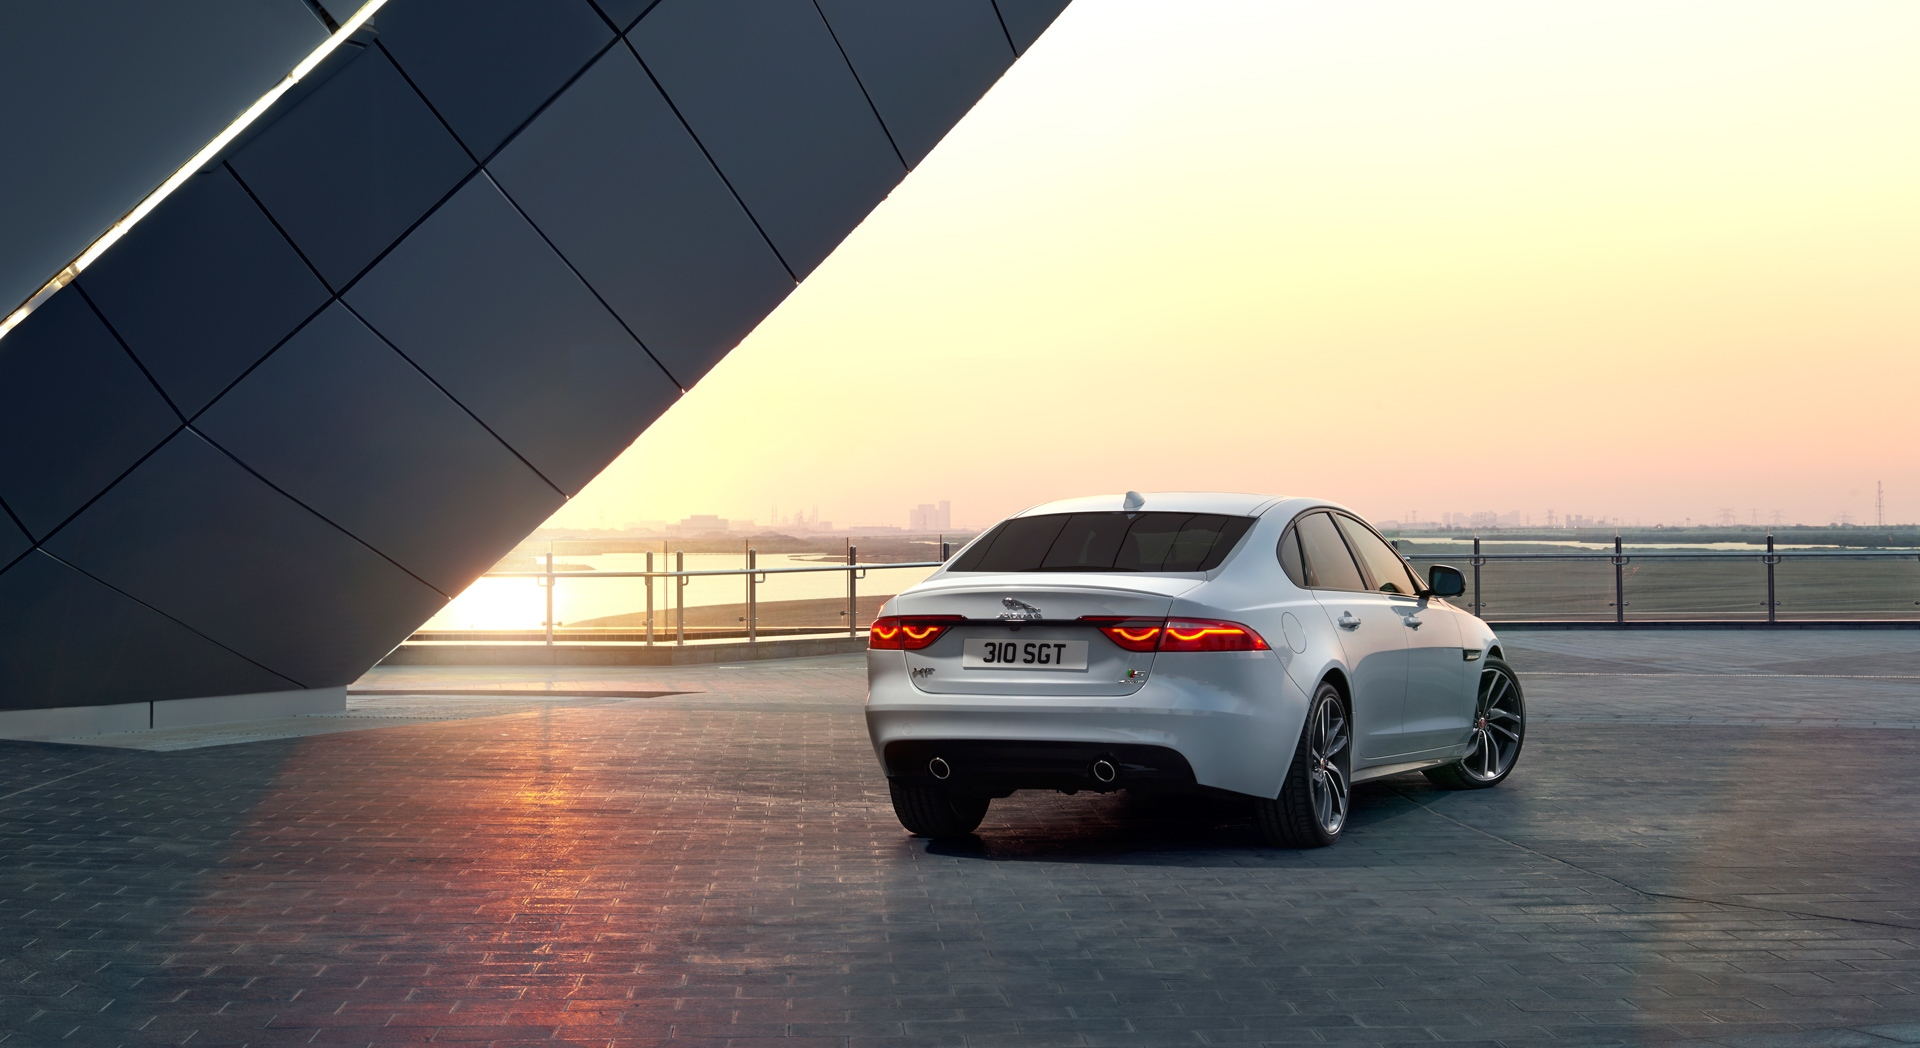 jaguar xf sunset